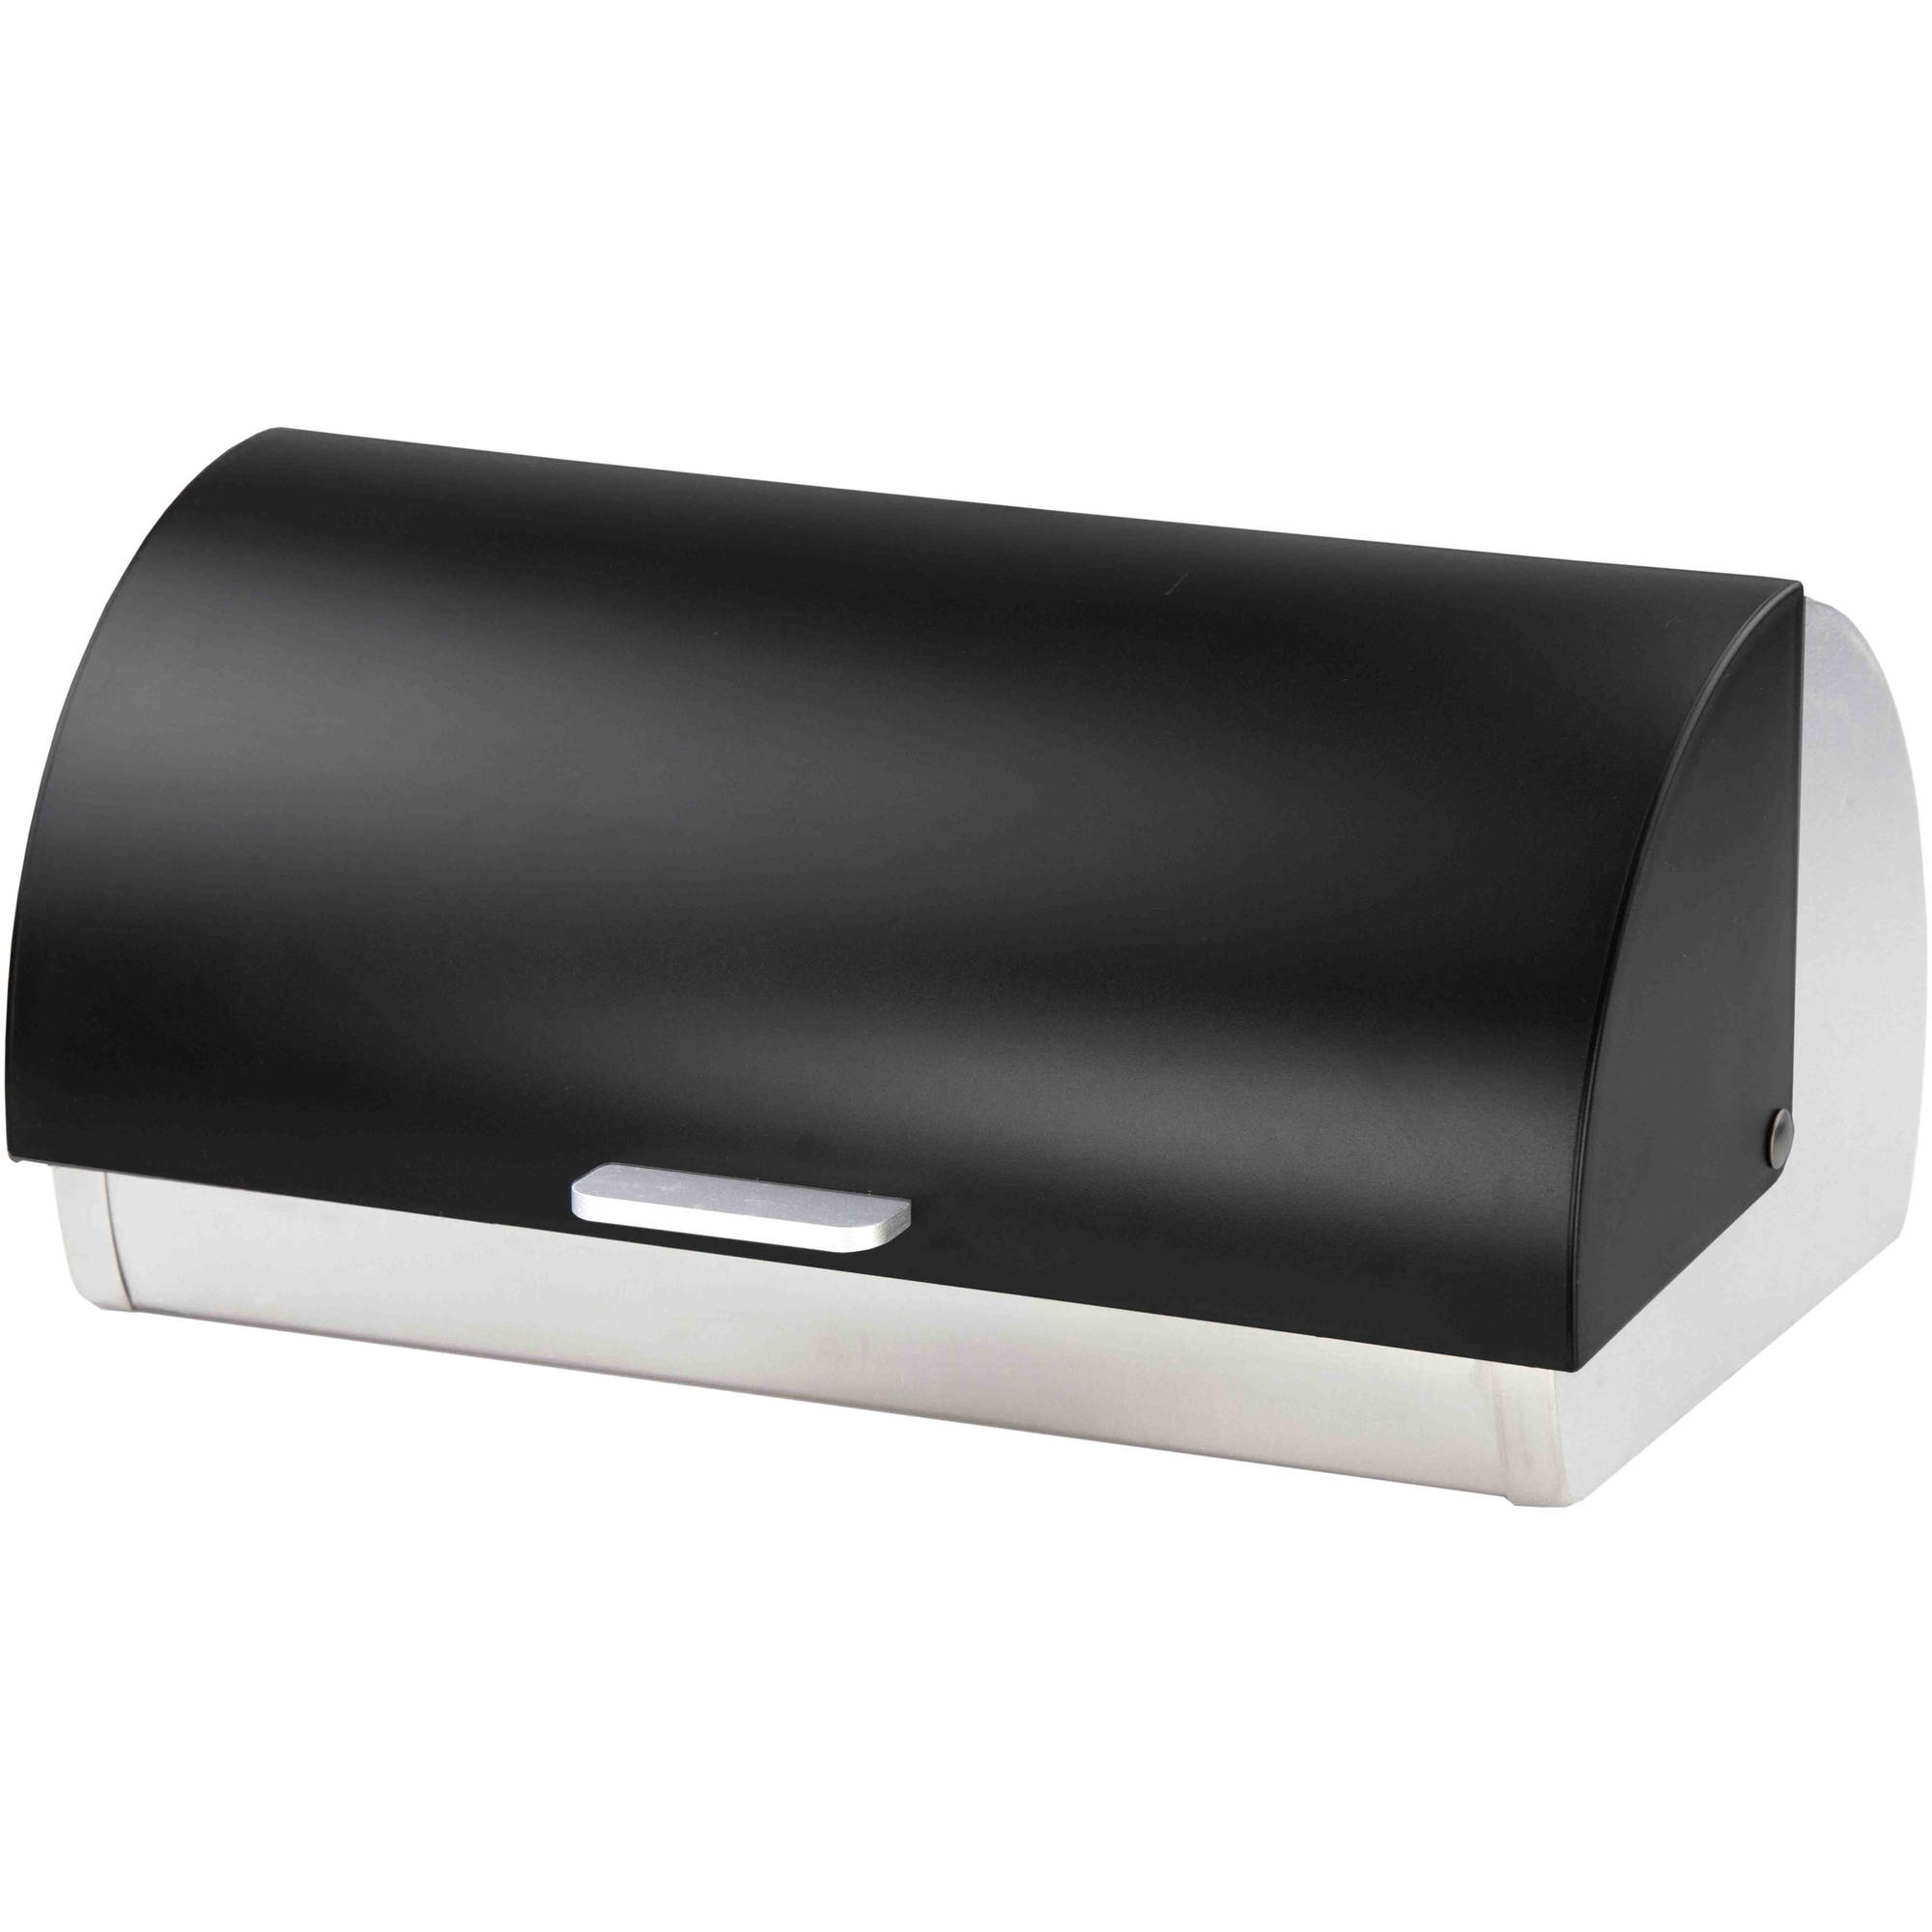 Tin bread box drawer insert - Home Basics Bread Box Acrylic And Black Stainless Steel